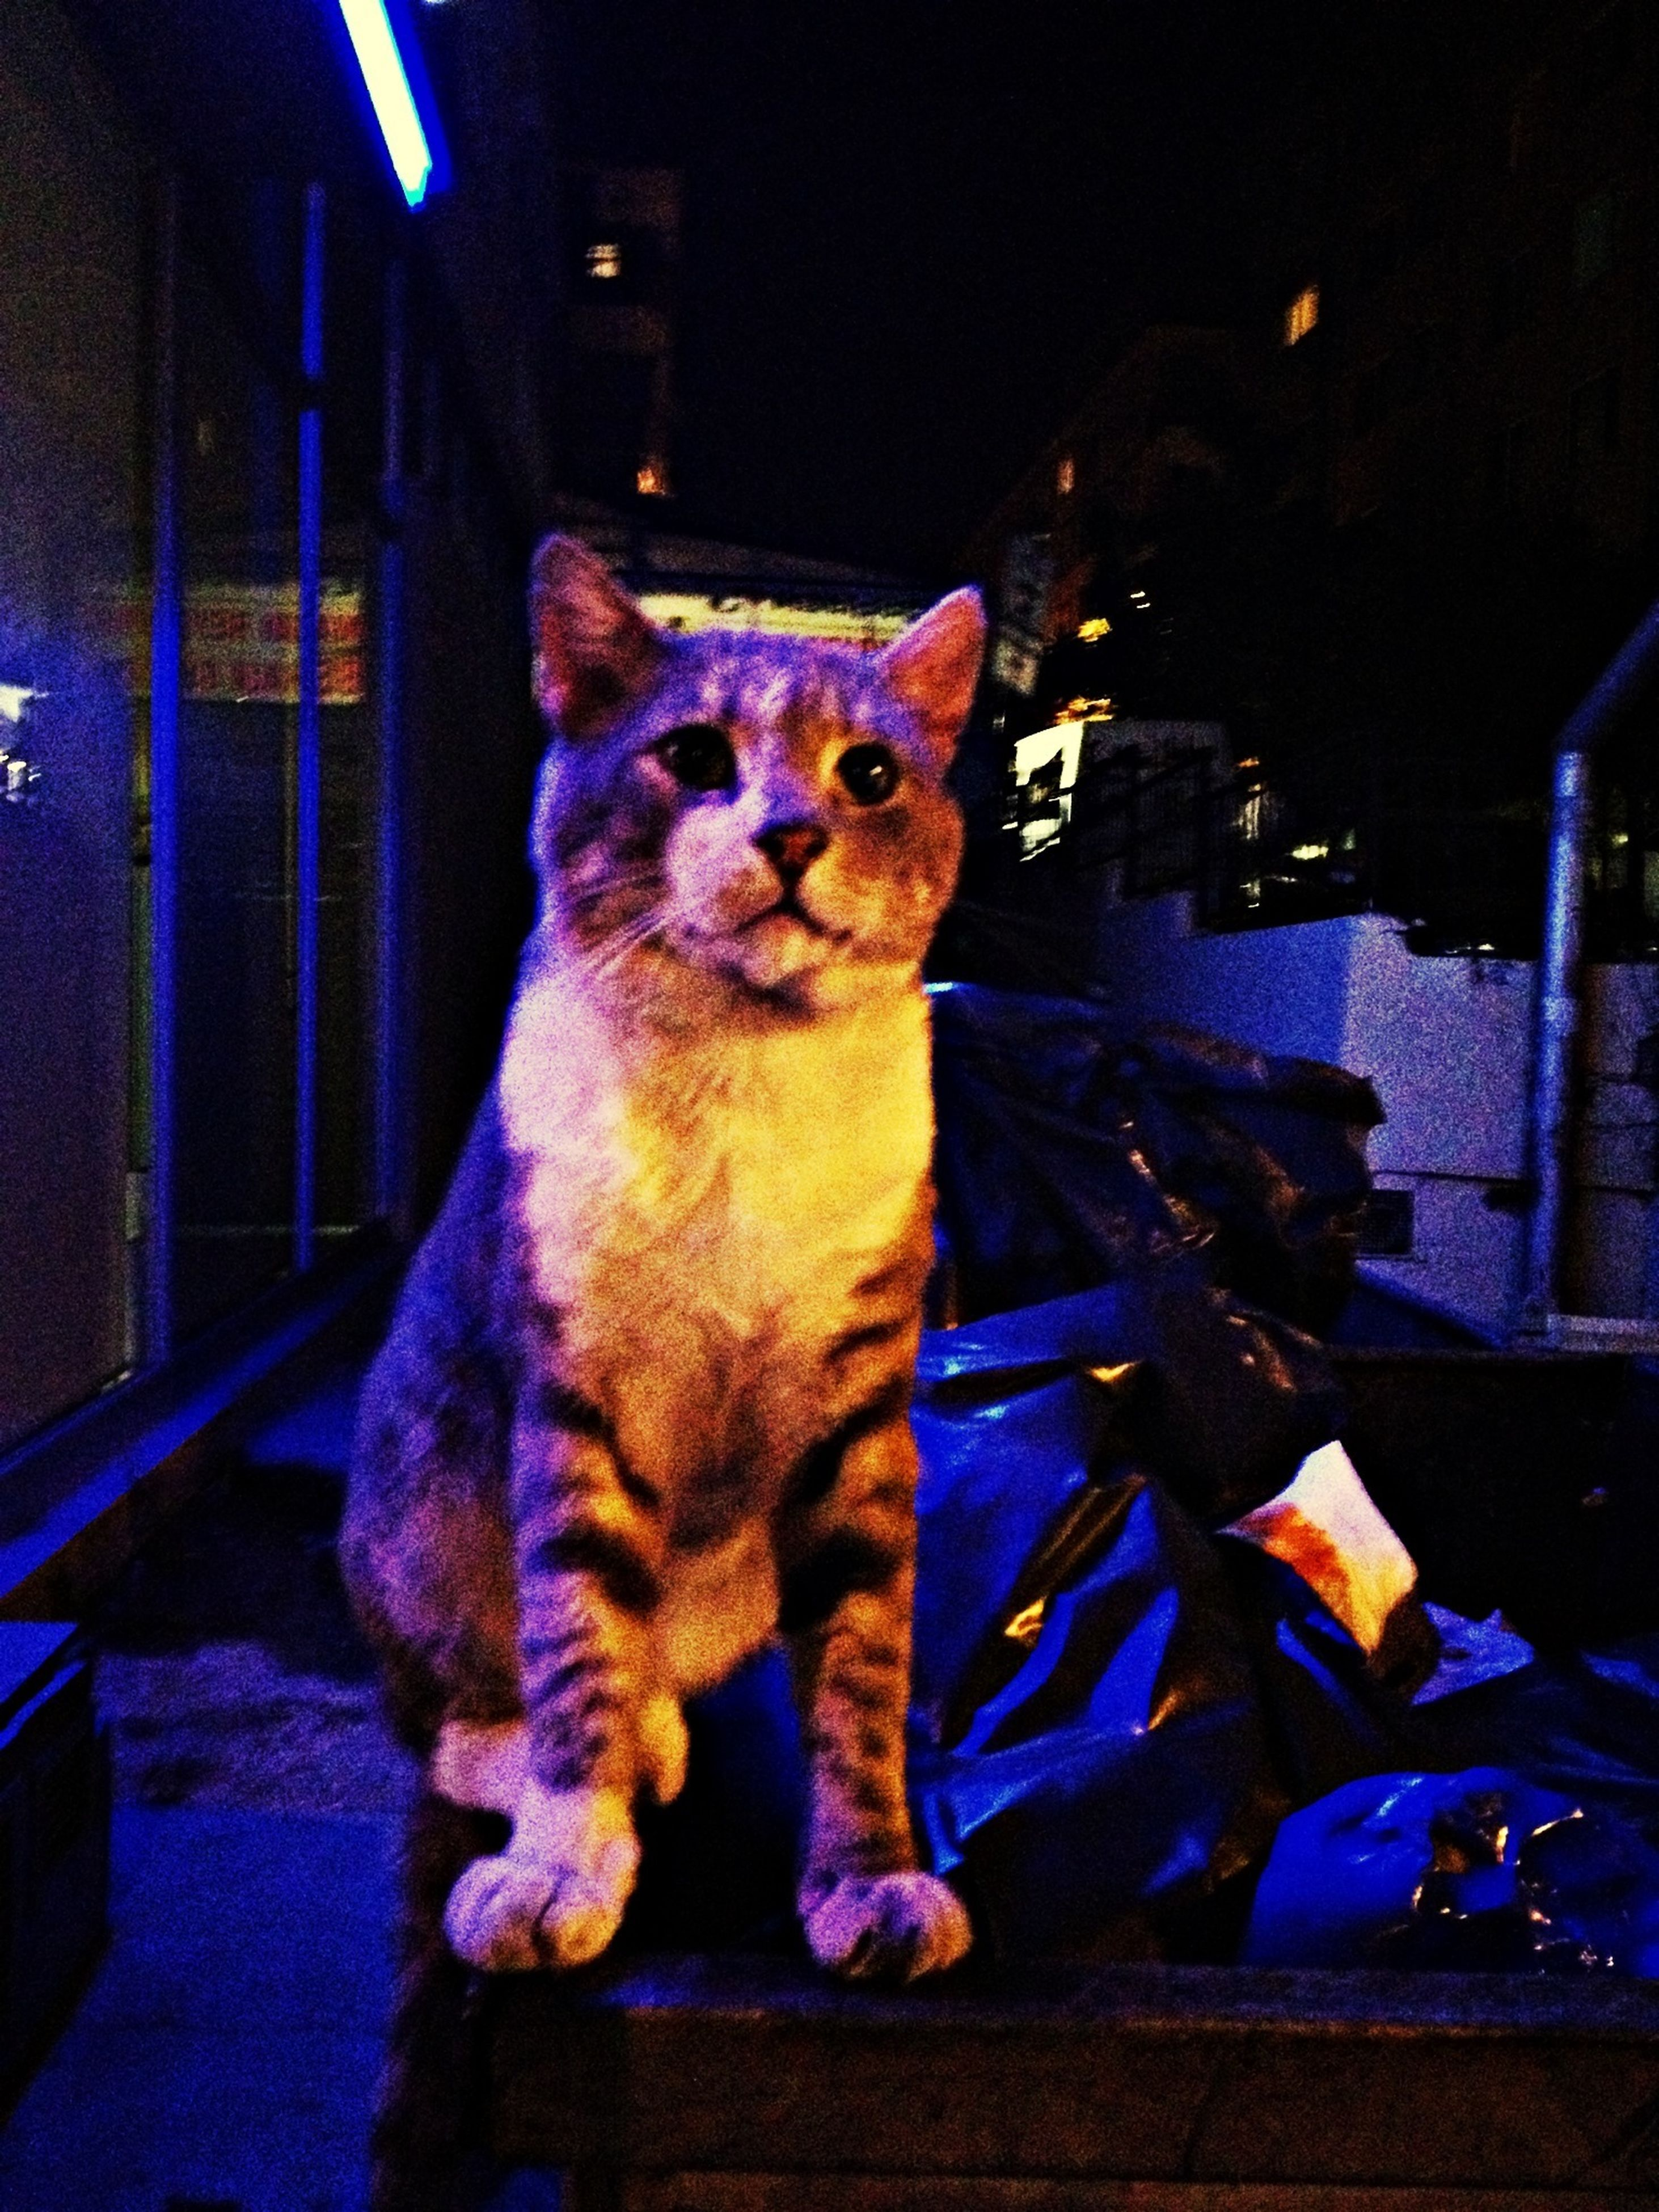 night, one animal, animal themes, illuminated, domestic animals, indoors, pets, blue, mammal, domestic cat, animal representation, multi colored, sitting, art and craft, cat, art, full length, creativity, side view, built structure